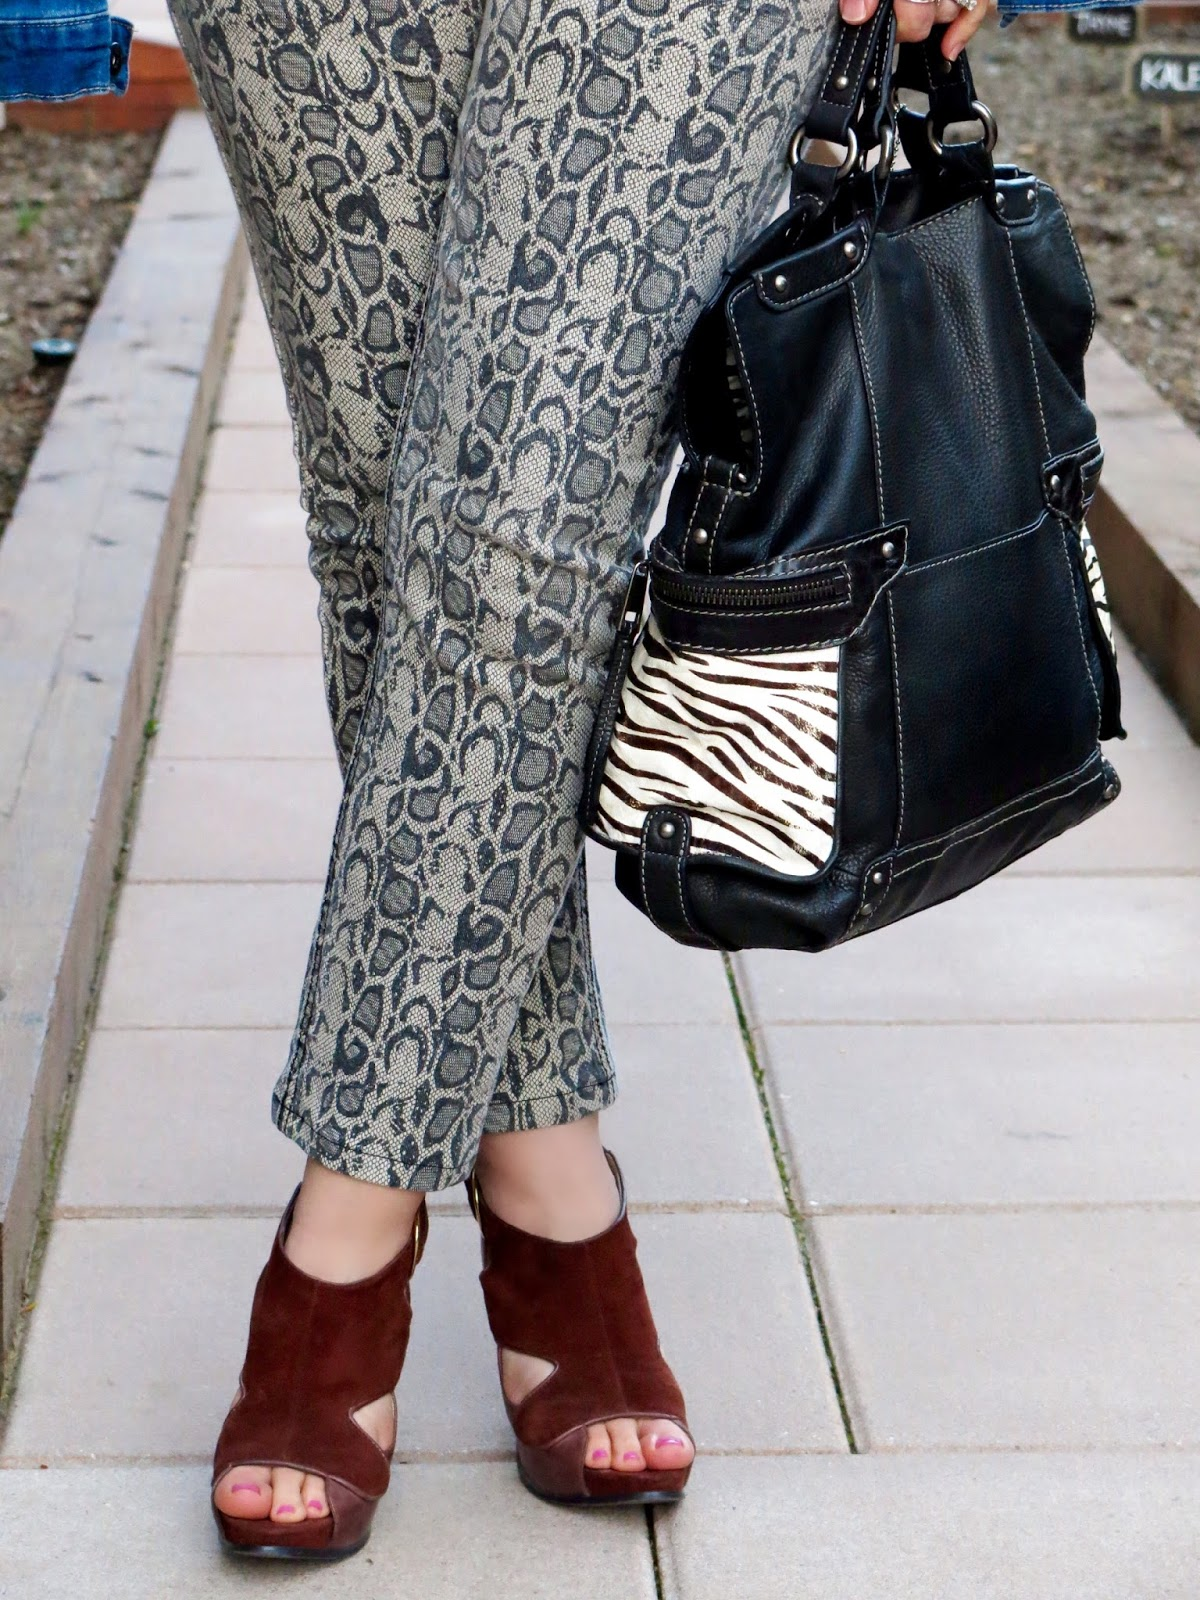 snakeskin-patterned jeans, Nine West suede shoes, Fossil bag